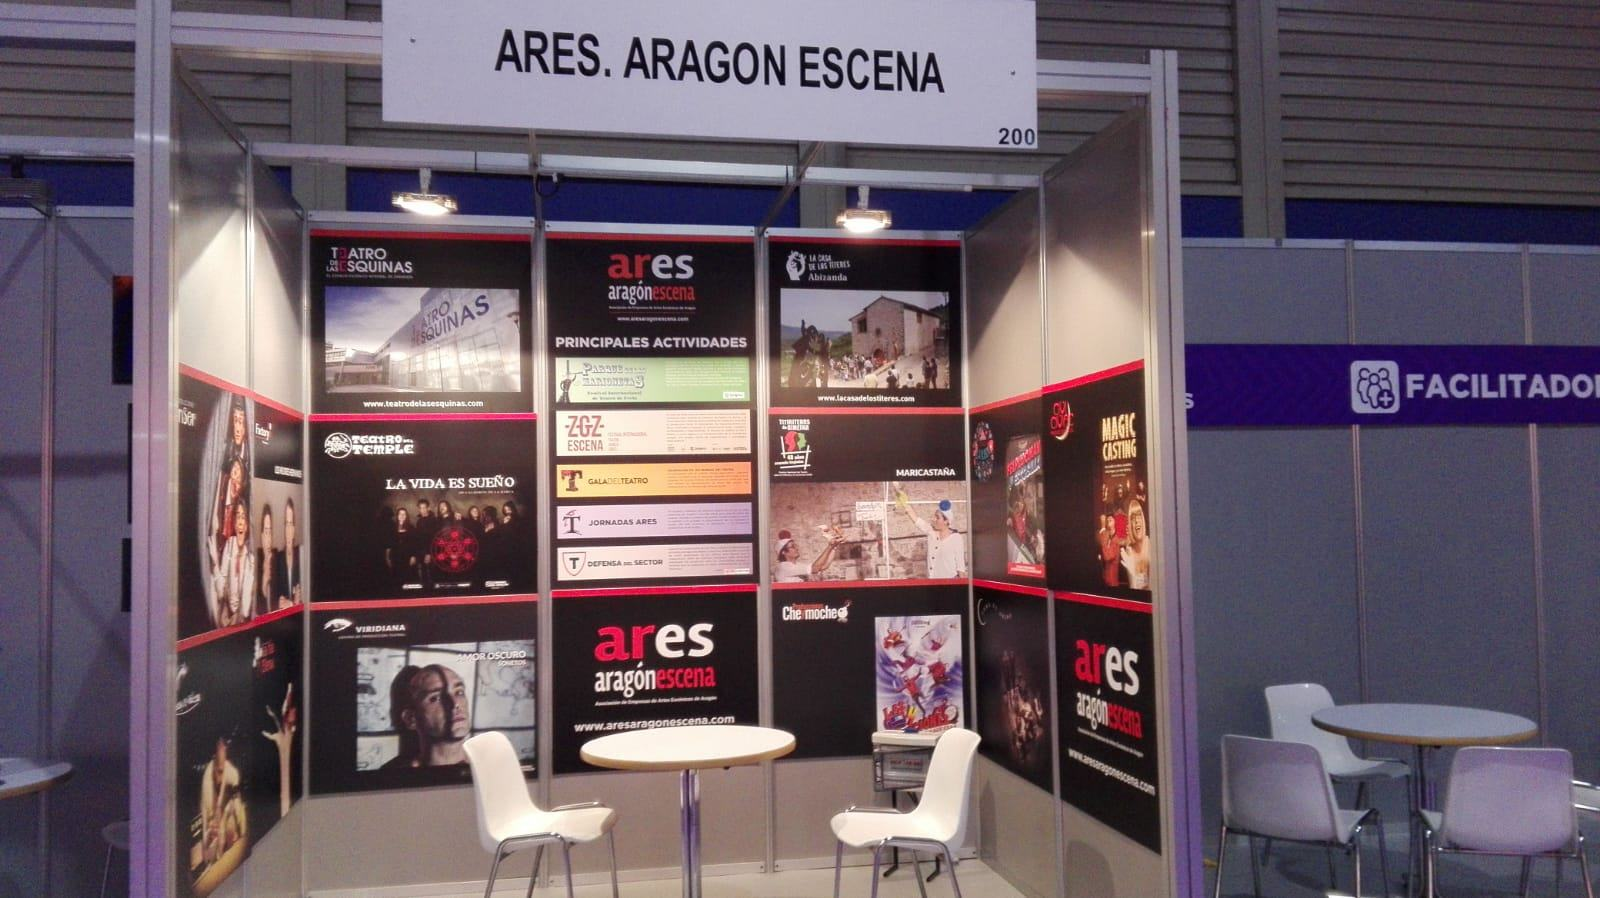 stand-Valladolid-2018-ARES-4